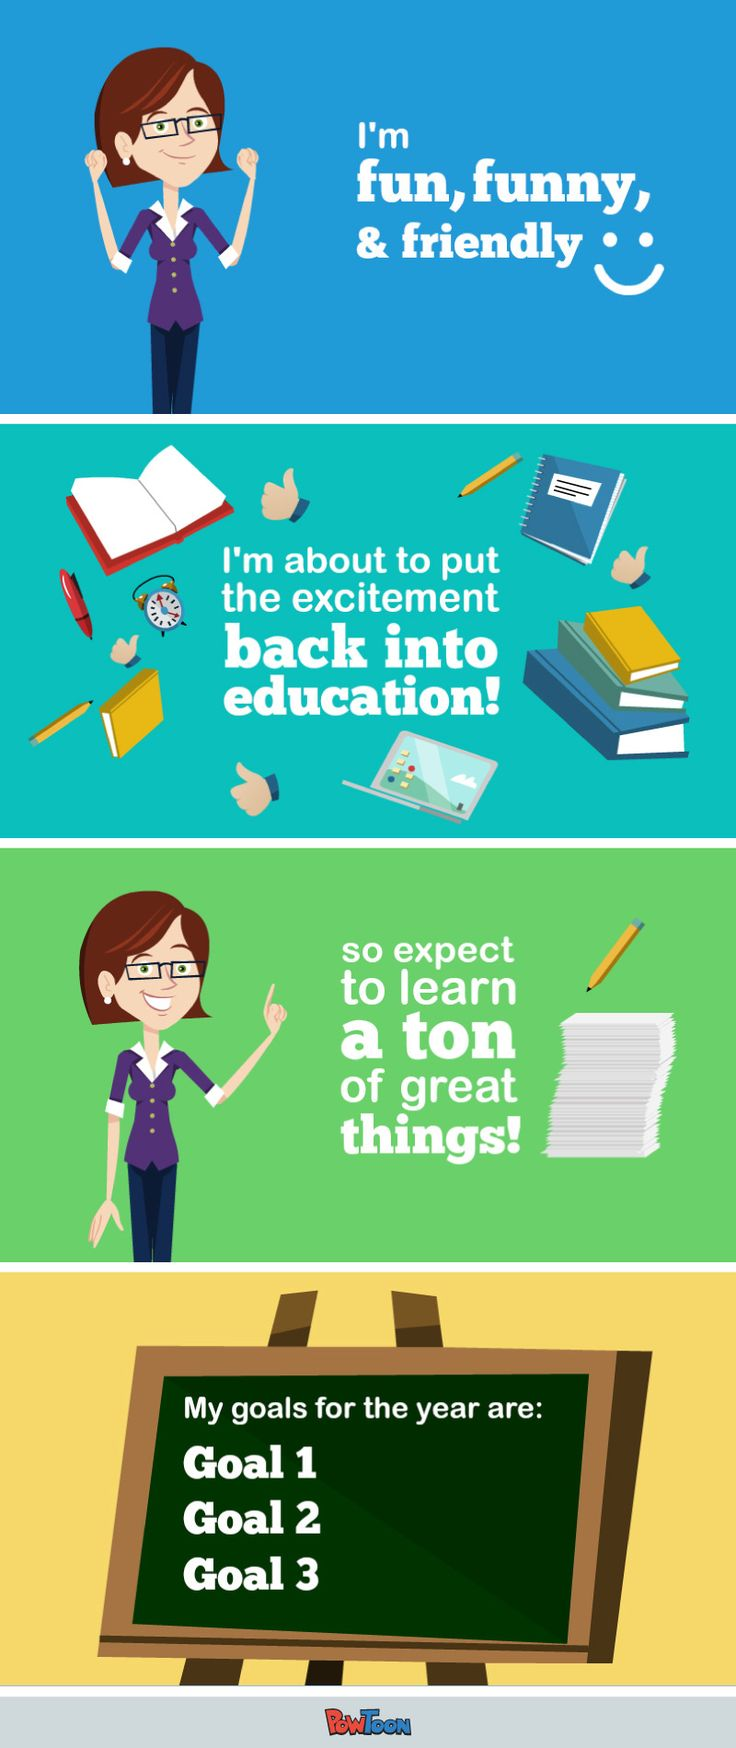 New School Year! Introduce yourself the cool, hi tech way, with a fun and easy animated presentation. This 'Teacher Resume' Template will leave a great first impression on your students! and it's FREE. #edtech http://www.powtoon.com/